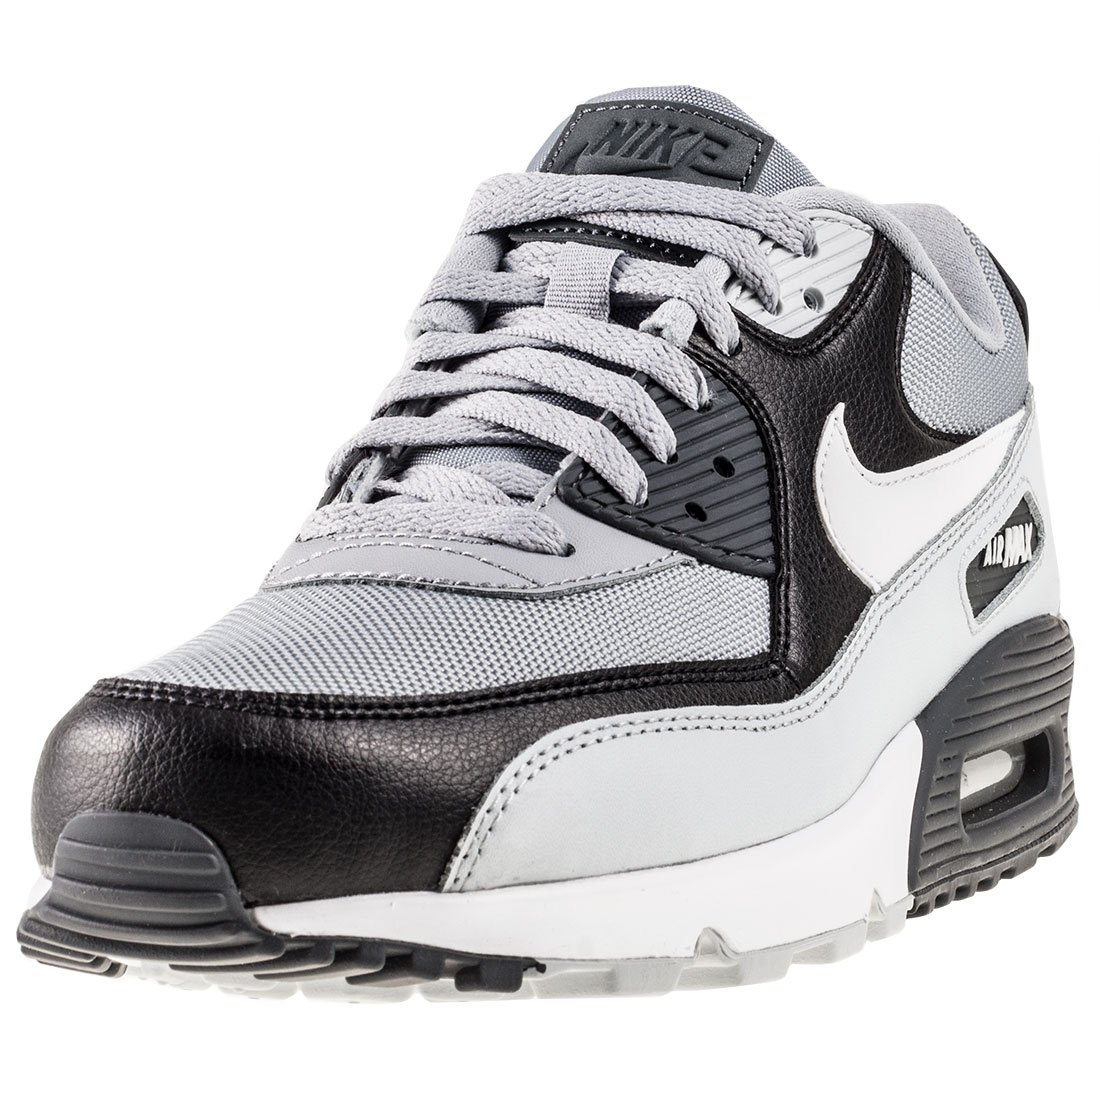 reputable site 0ca5b d8f75 Nike Men s Air Max 90 Essential Running Shoe, Wolf Grey White-Pure Platinum- Black 8  Buy Online at Low Prices in India - Amazon.in